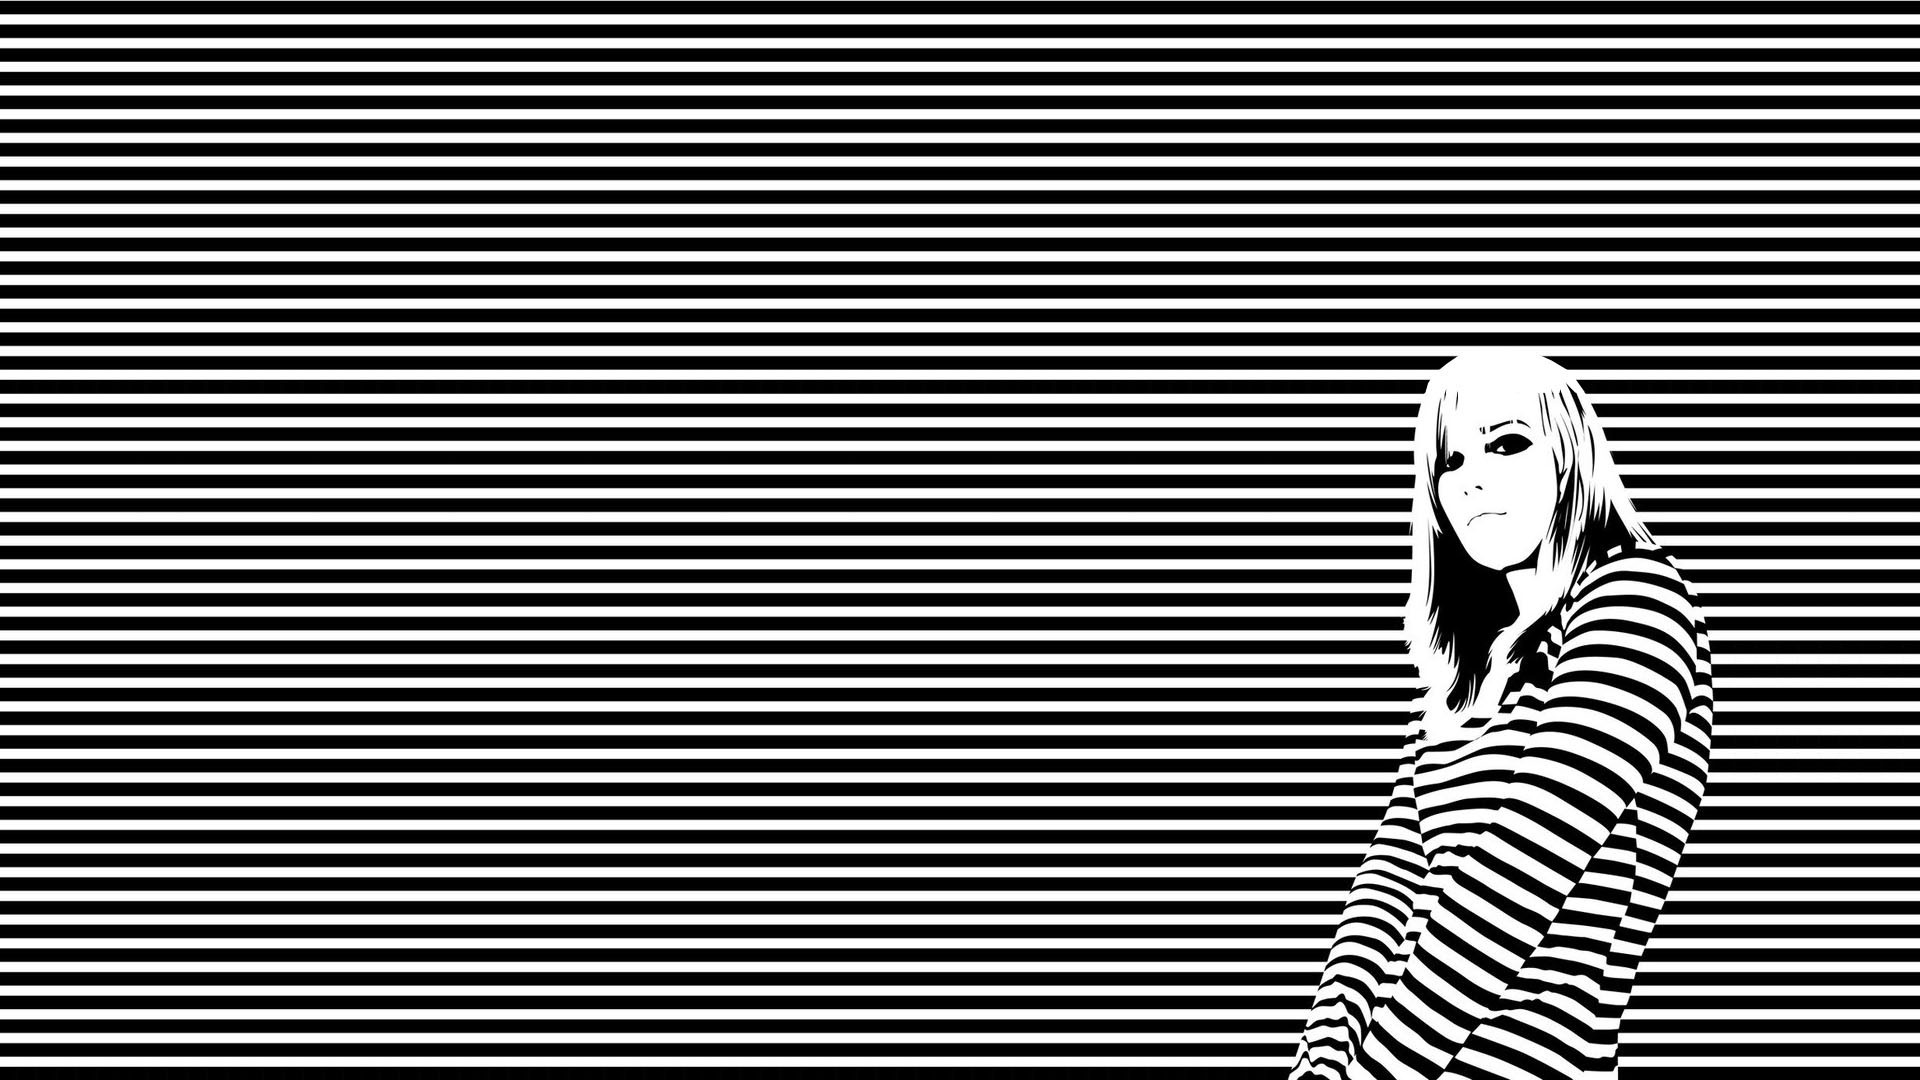 Black And White Stripes wallpaper 235570 1920x1080